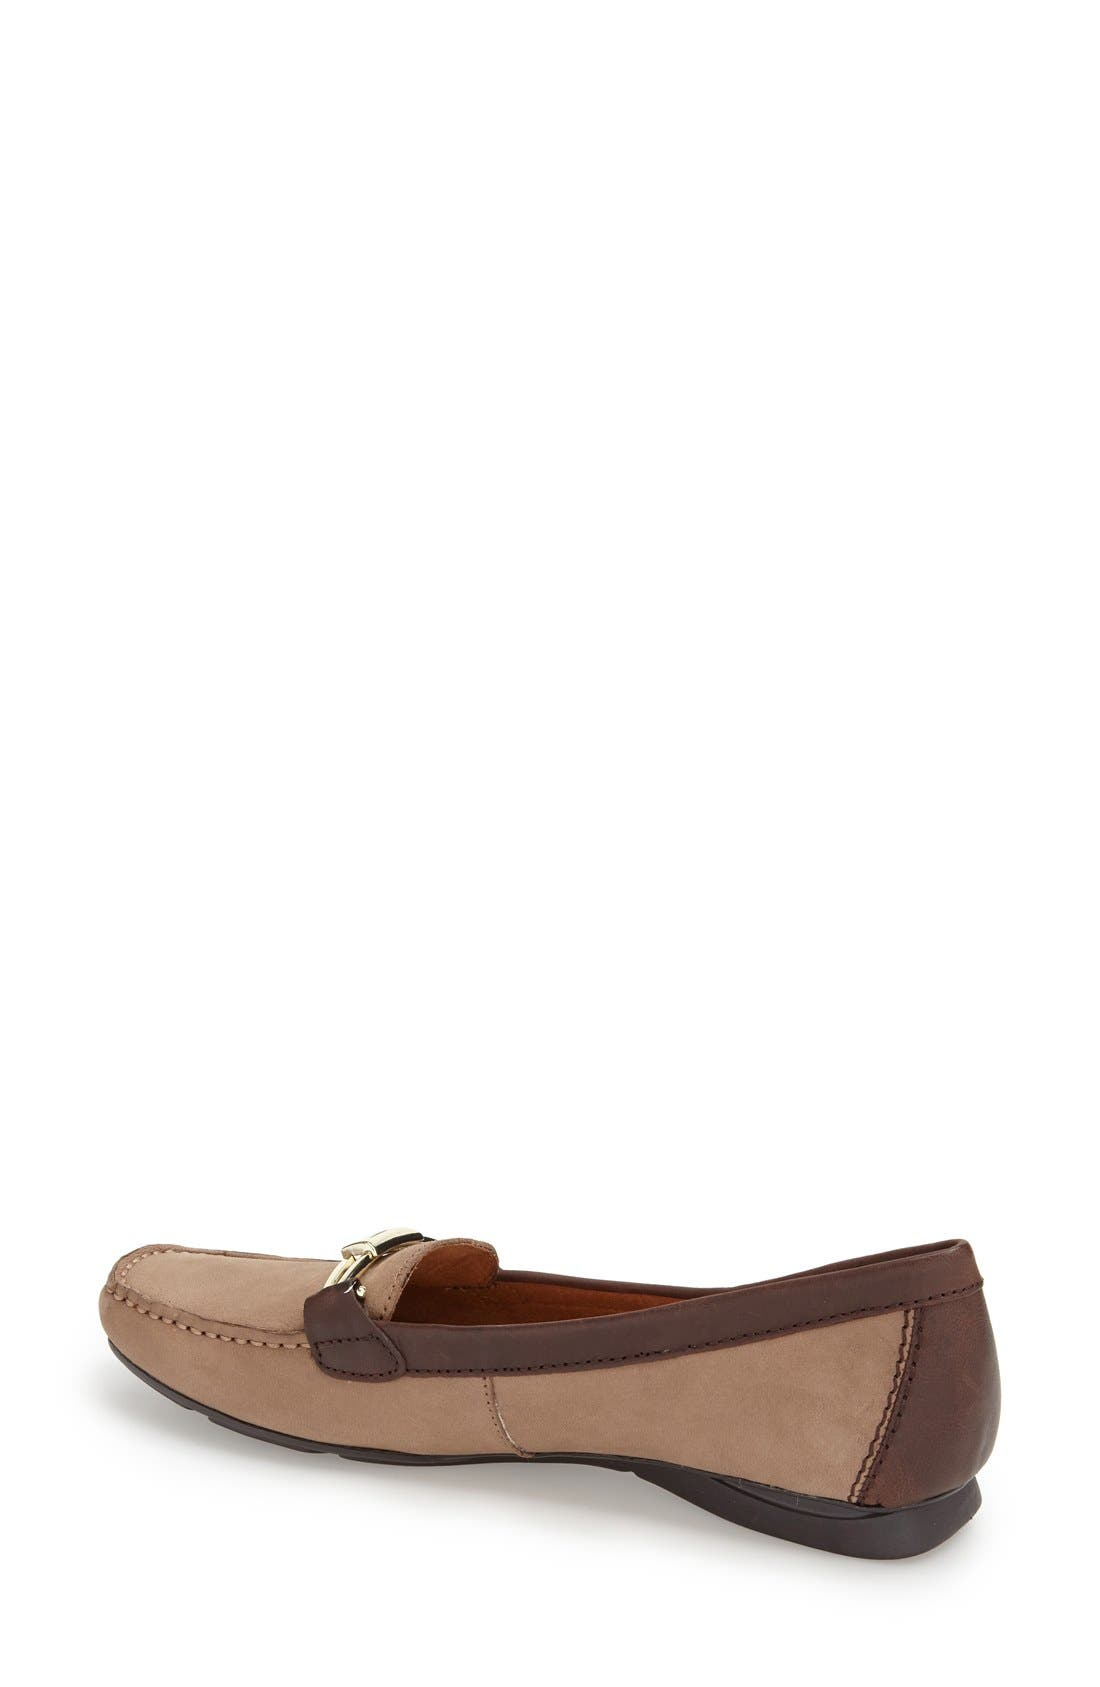 'Saturday' Loafer,                             Alternate thumbnail 11, color,